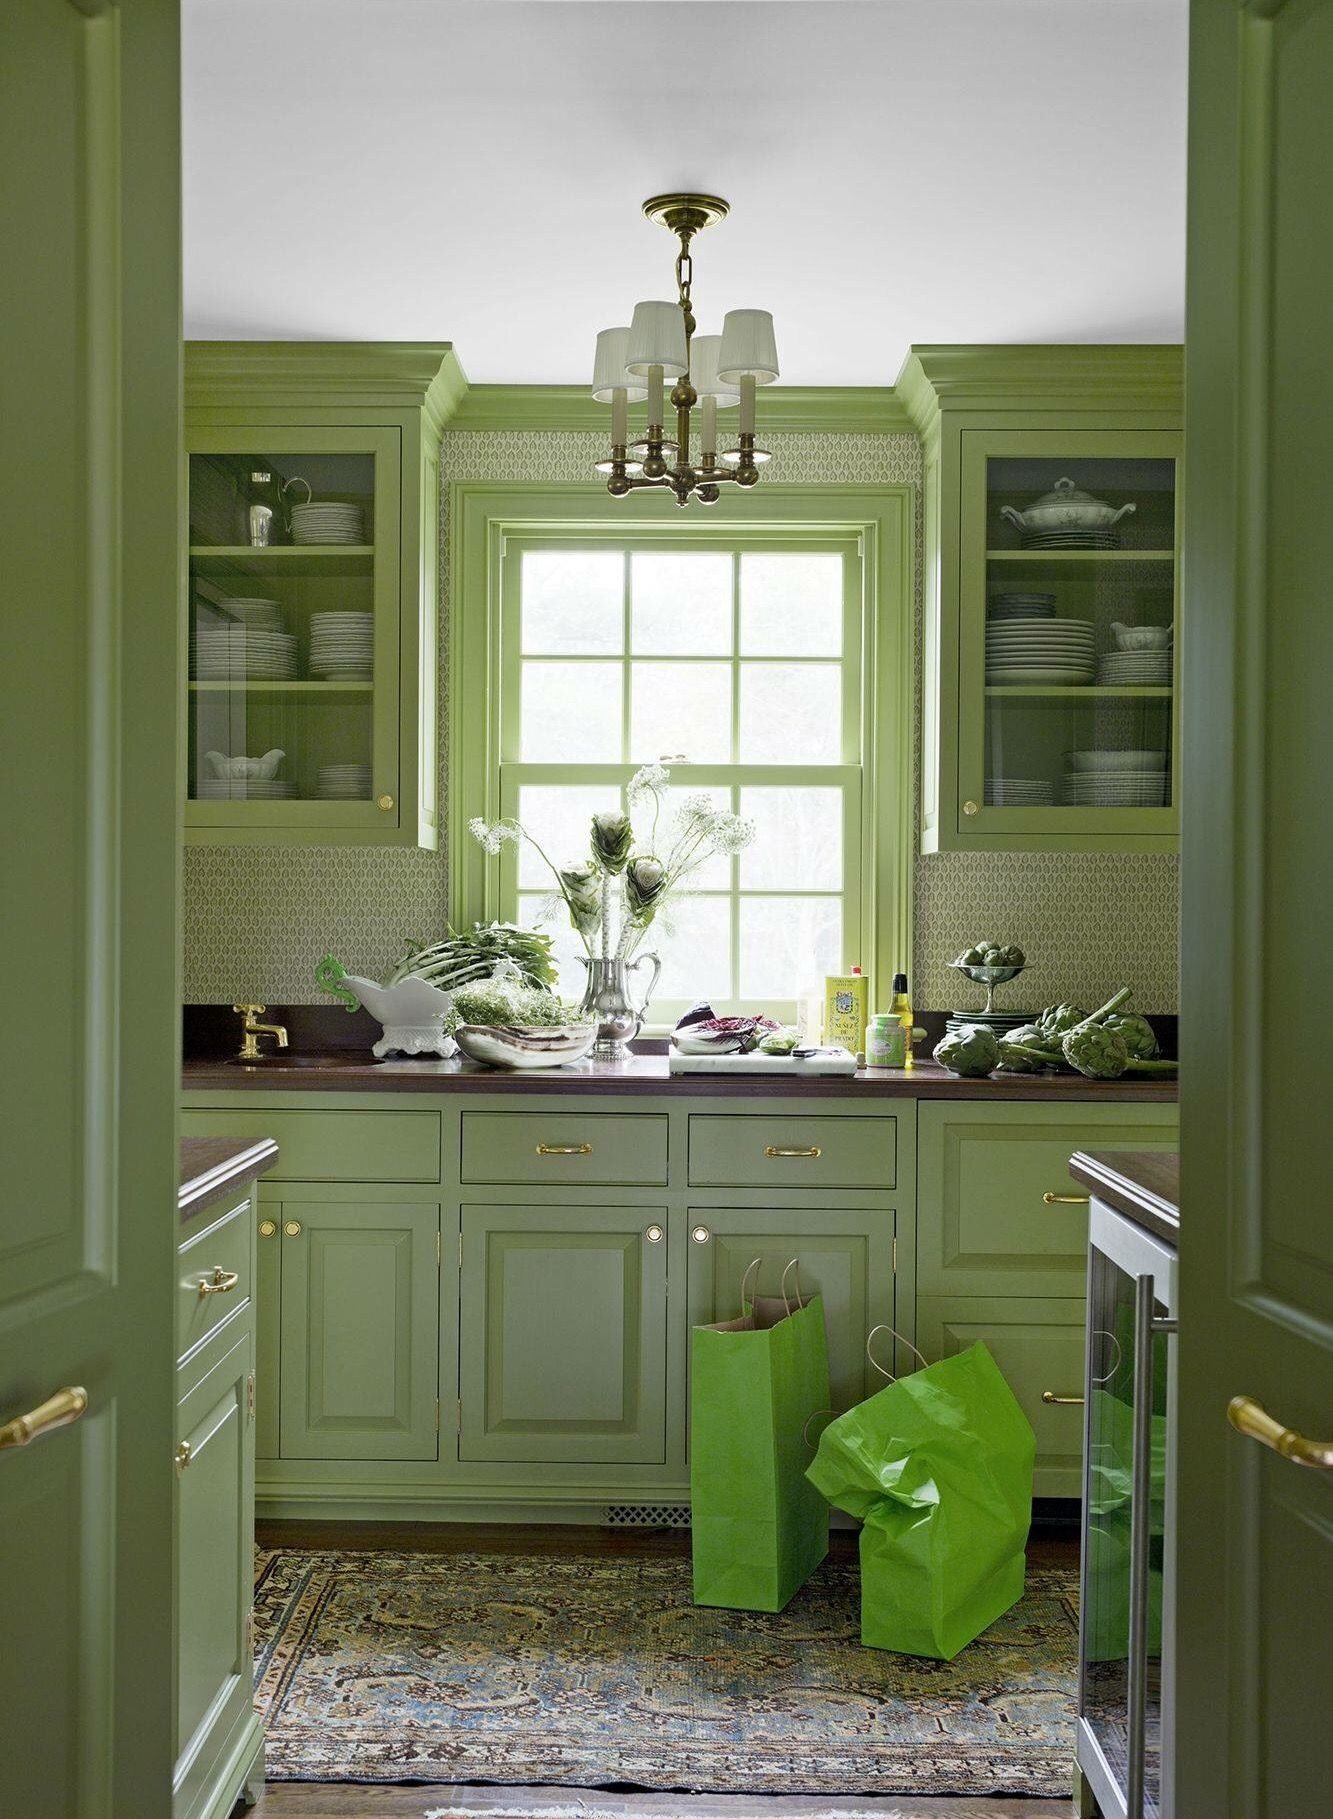 pin by dee barnes on decorating dream ideas green kitchen cabinets green countertops on kitchen cabinet color ideas id=58671